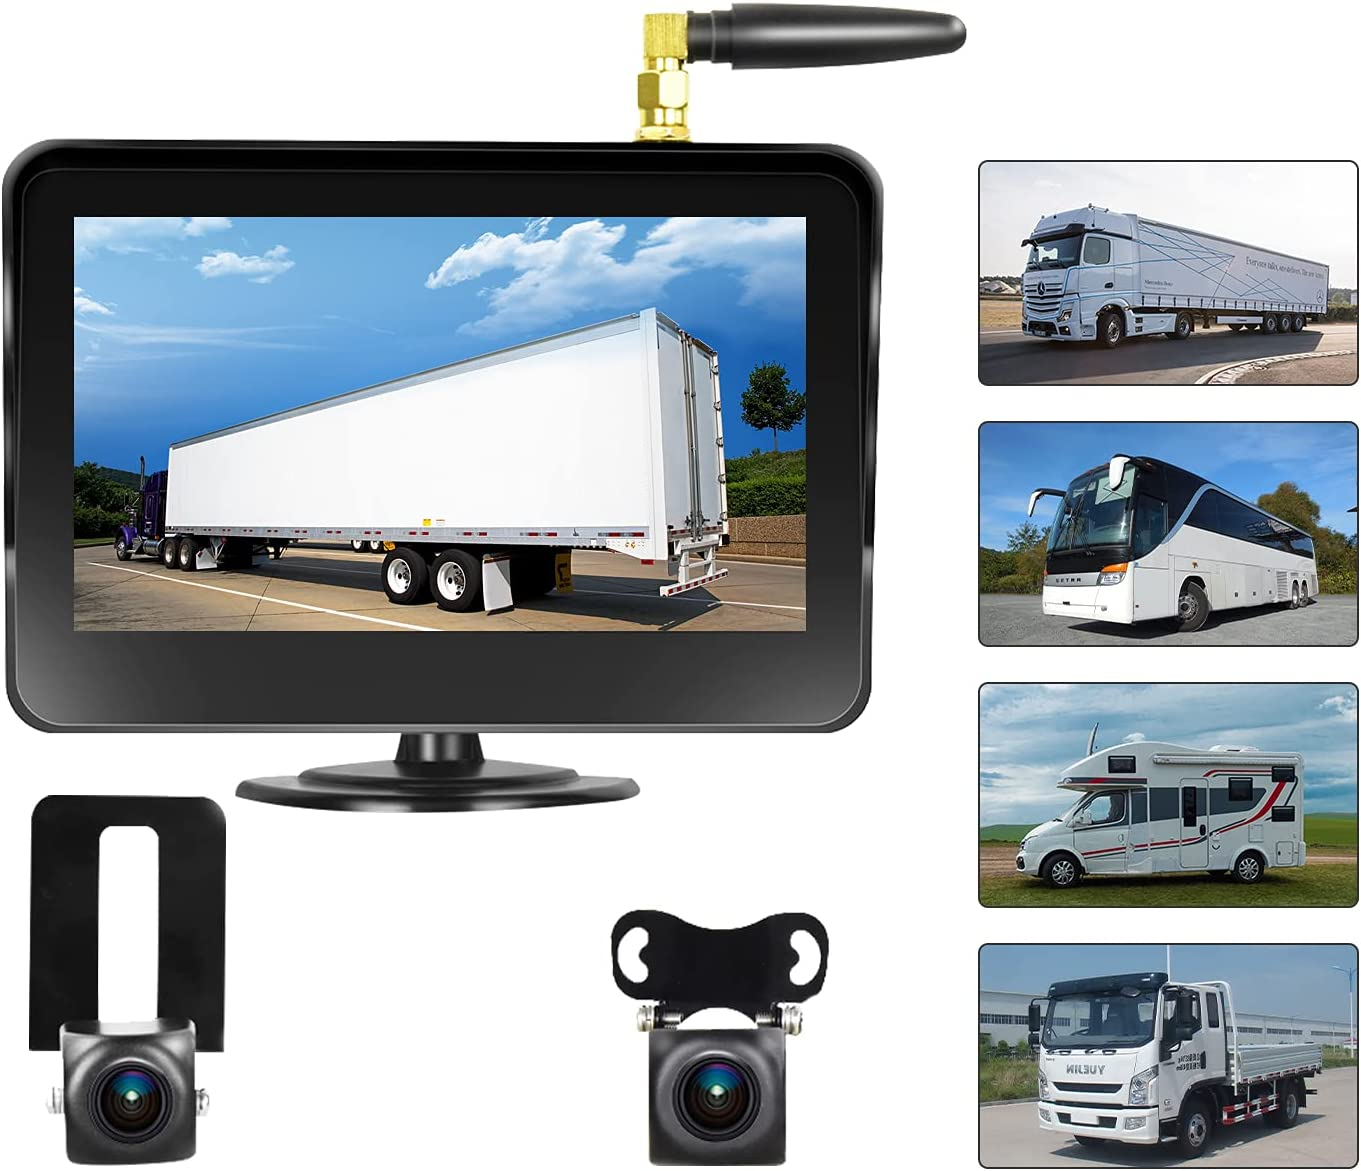 Camecho Vehicle Wireless Courier shipping free shipping Backup NEW Camera 5 Inch H 2 Split Monitor